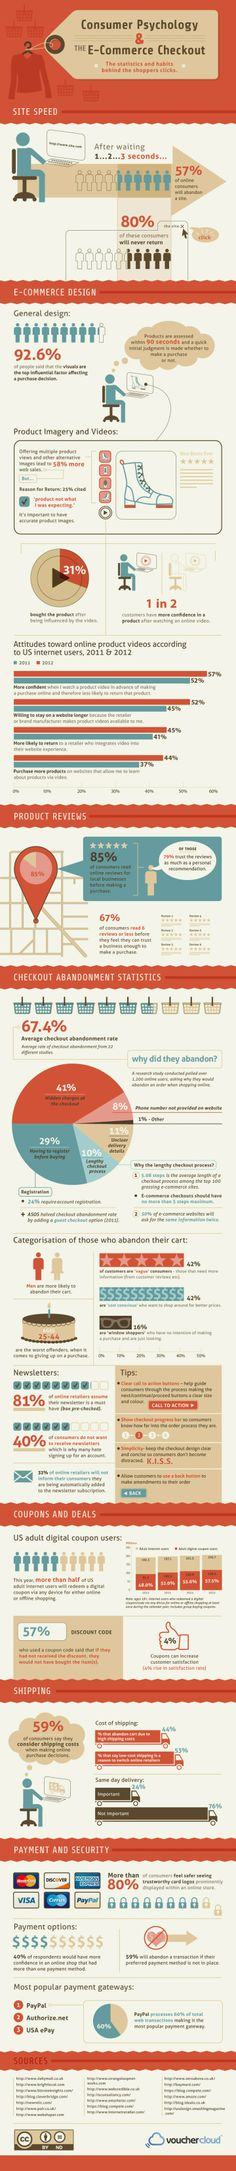 Consumer Shopping Habits: The Psychology of a Checkout #ecommerce #infografia